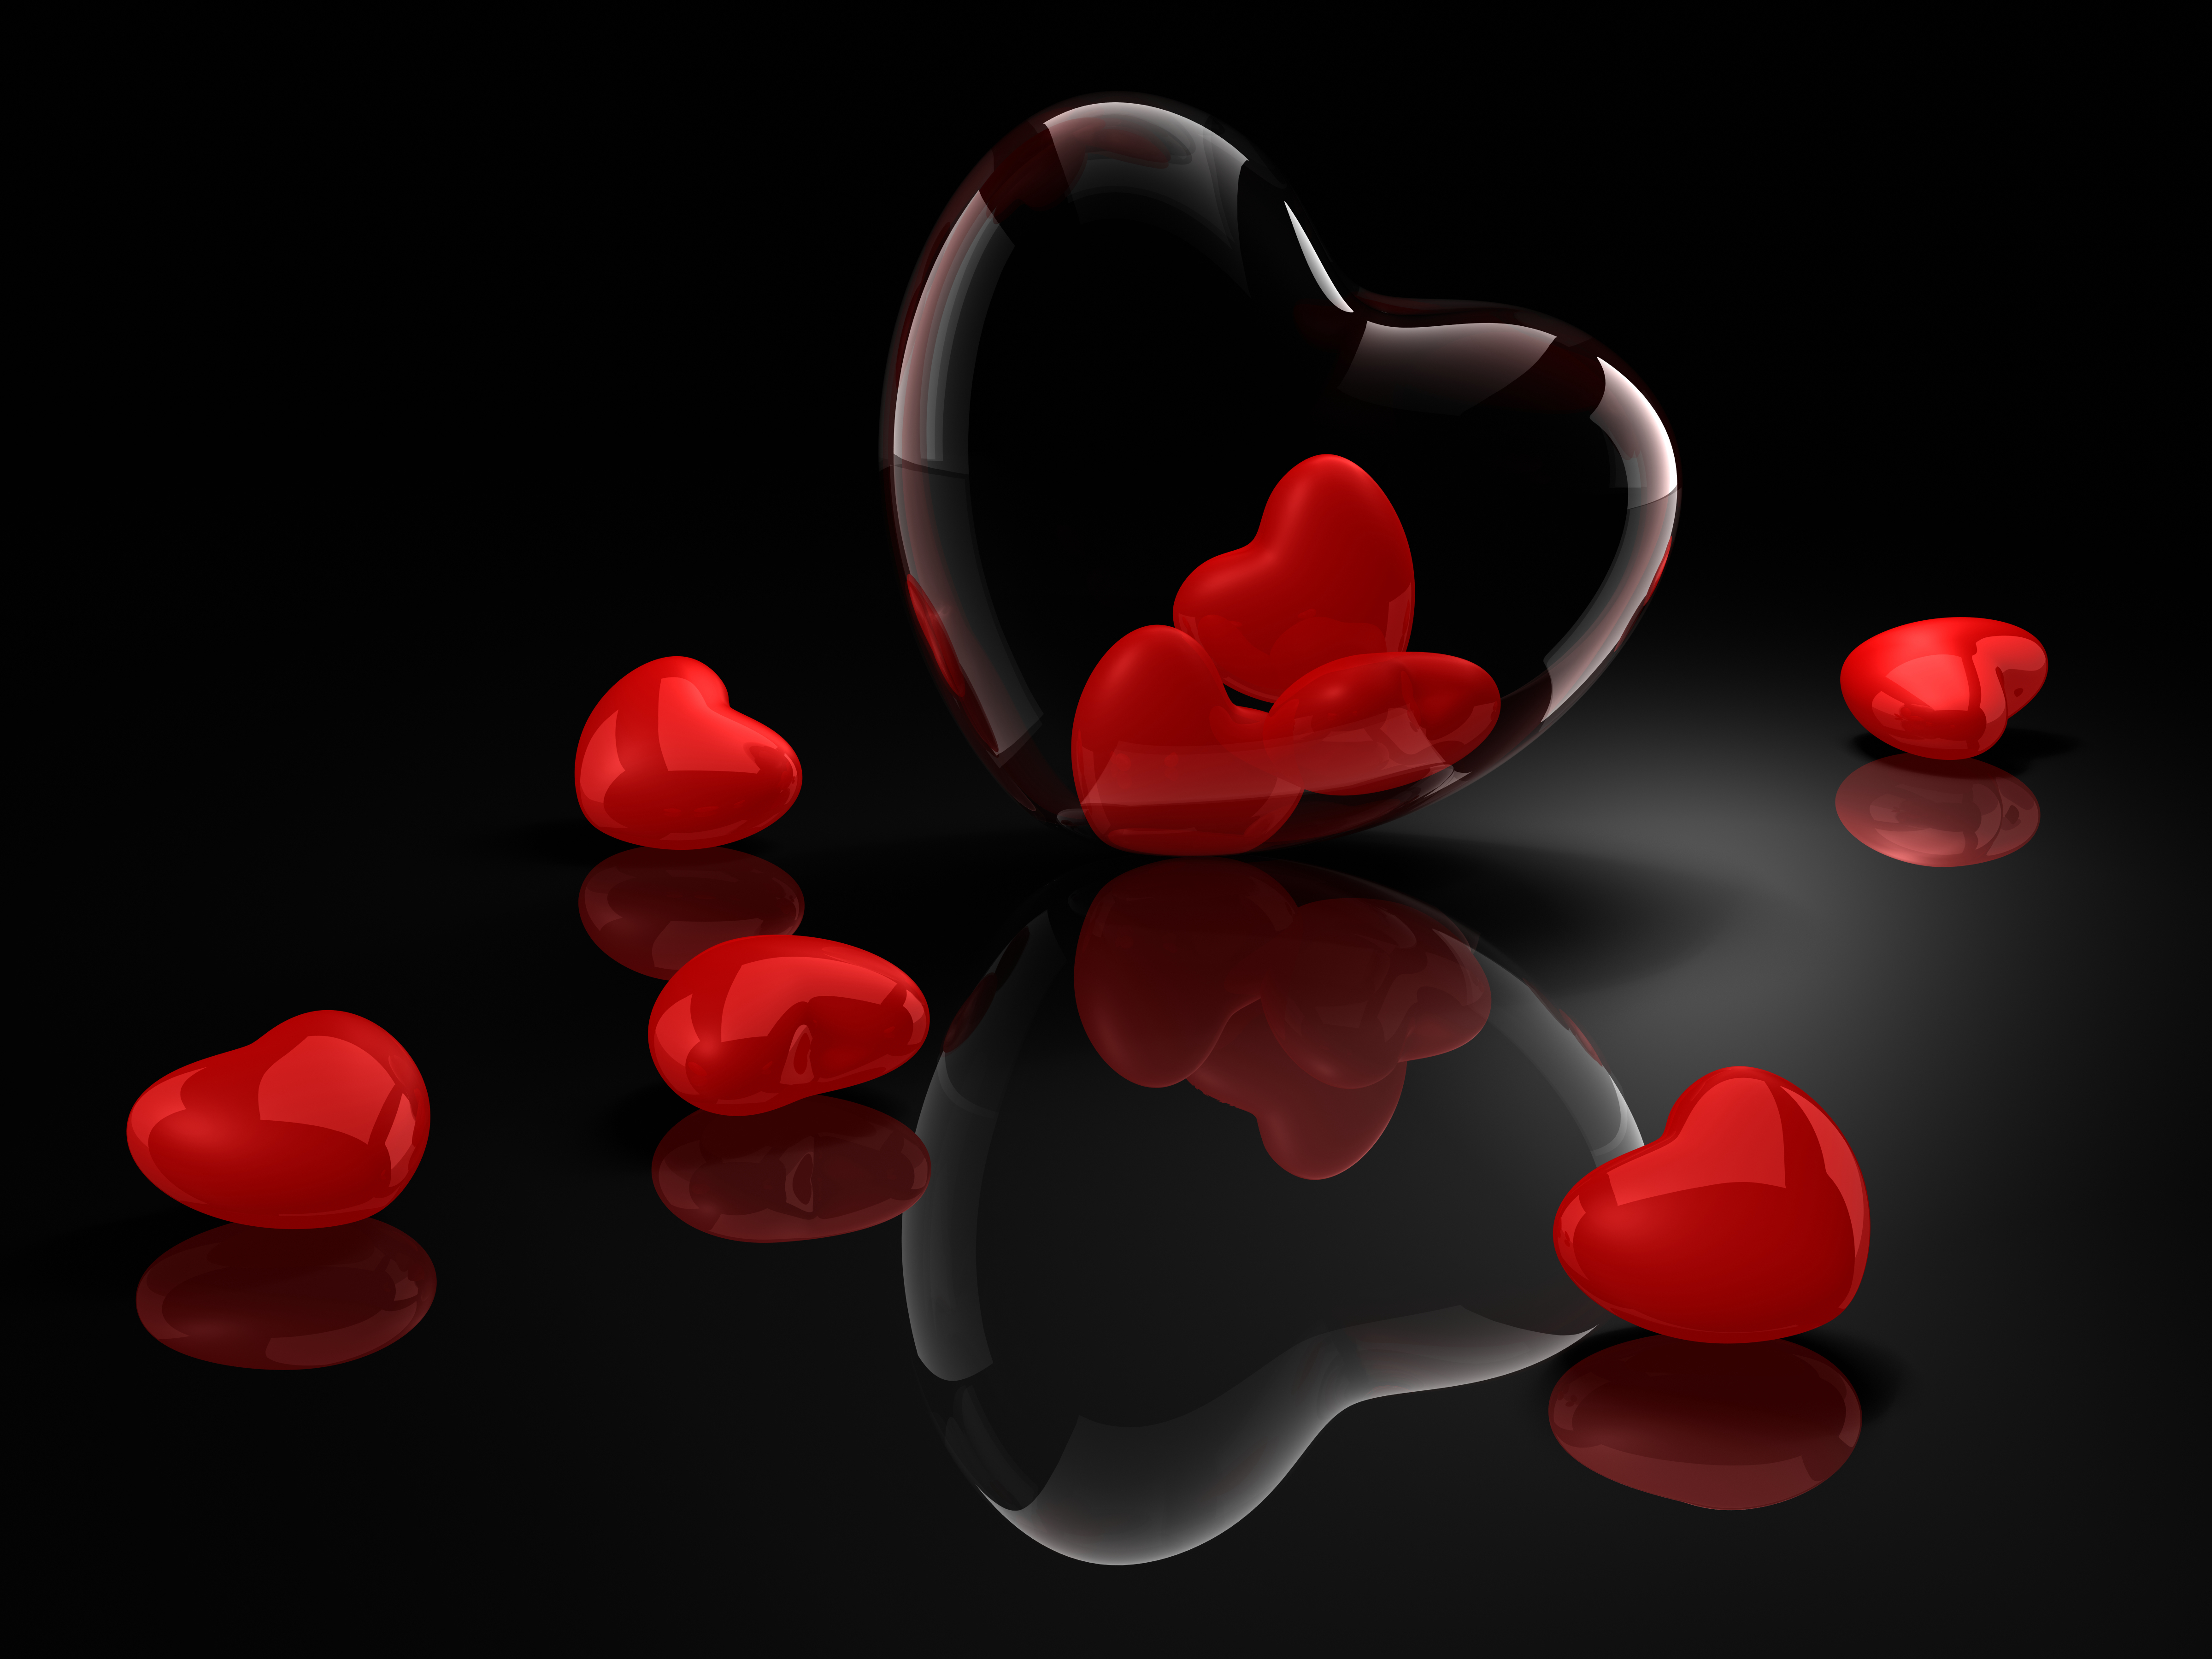 Crystal Hearts 5k HD Love 4k Wallpapers Images Backgrounds